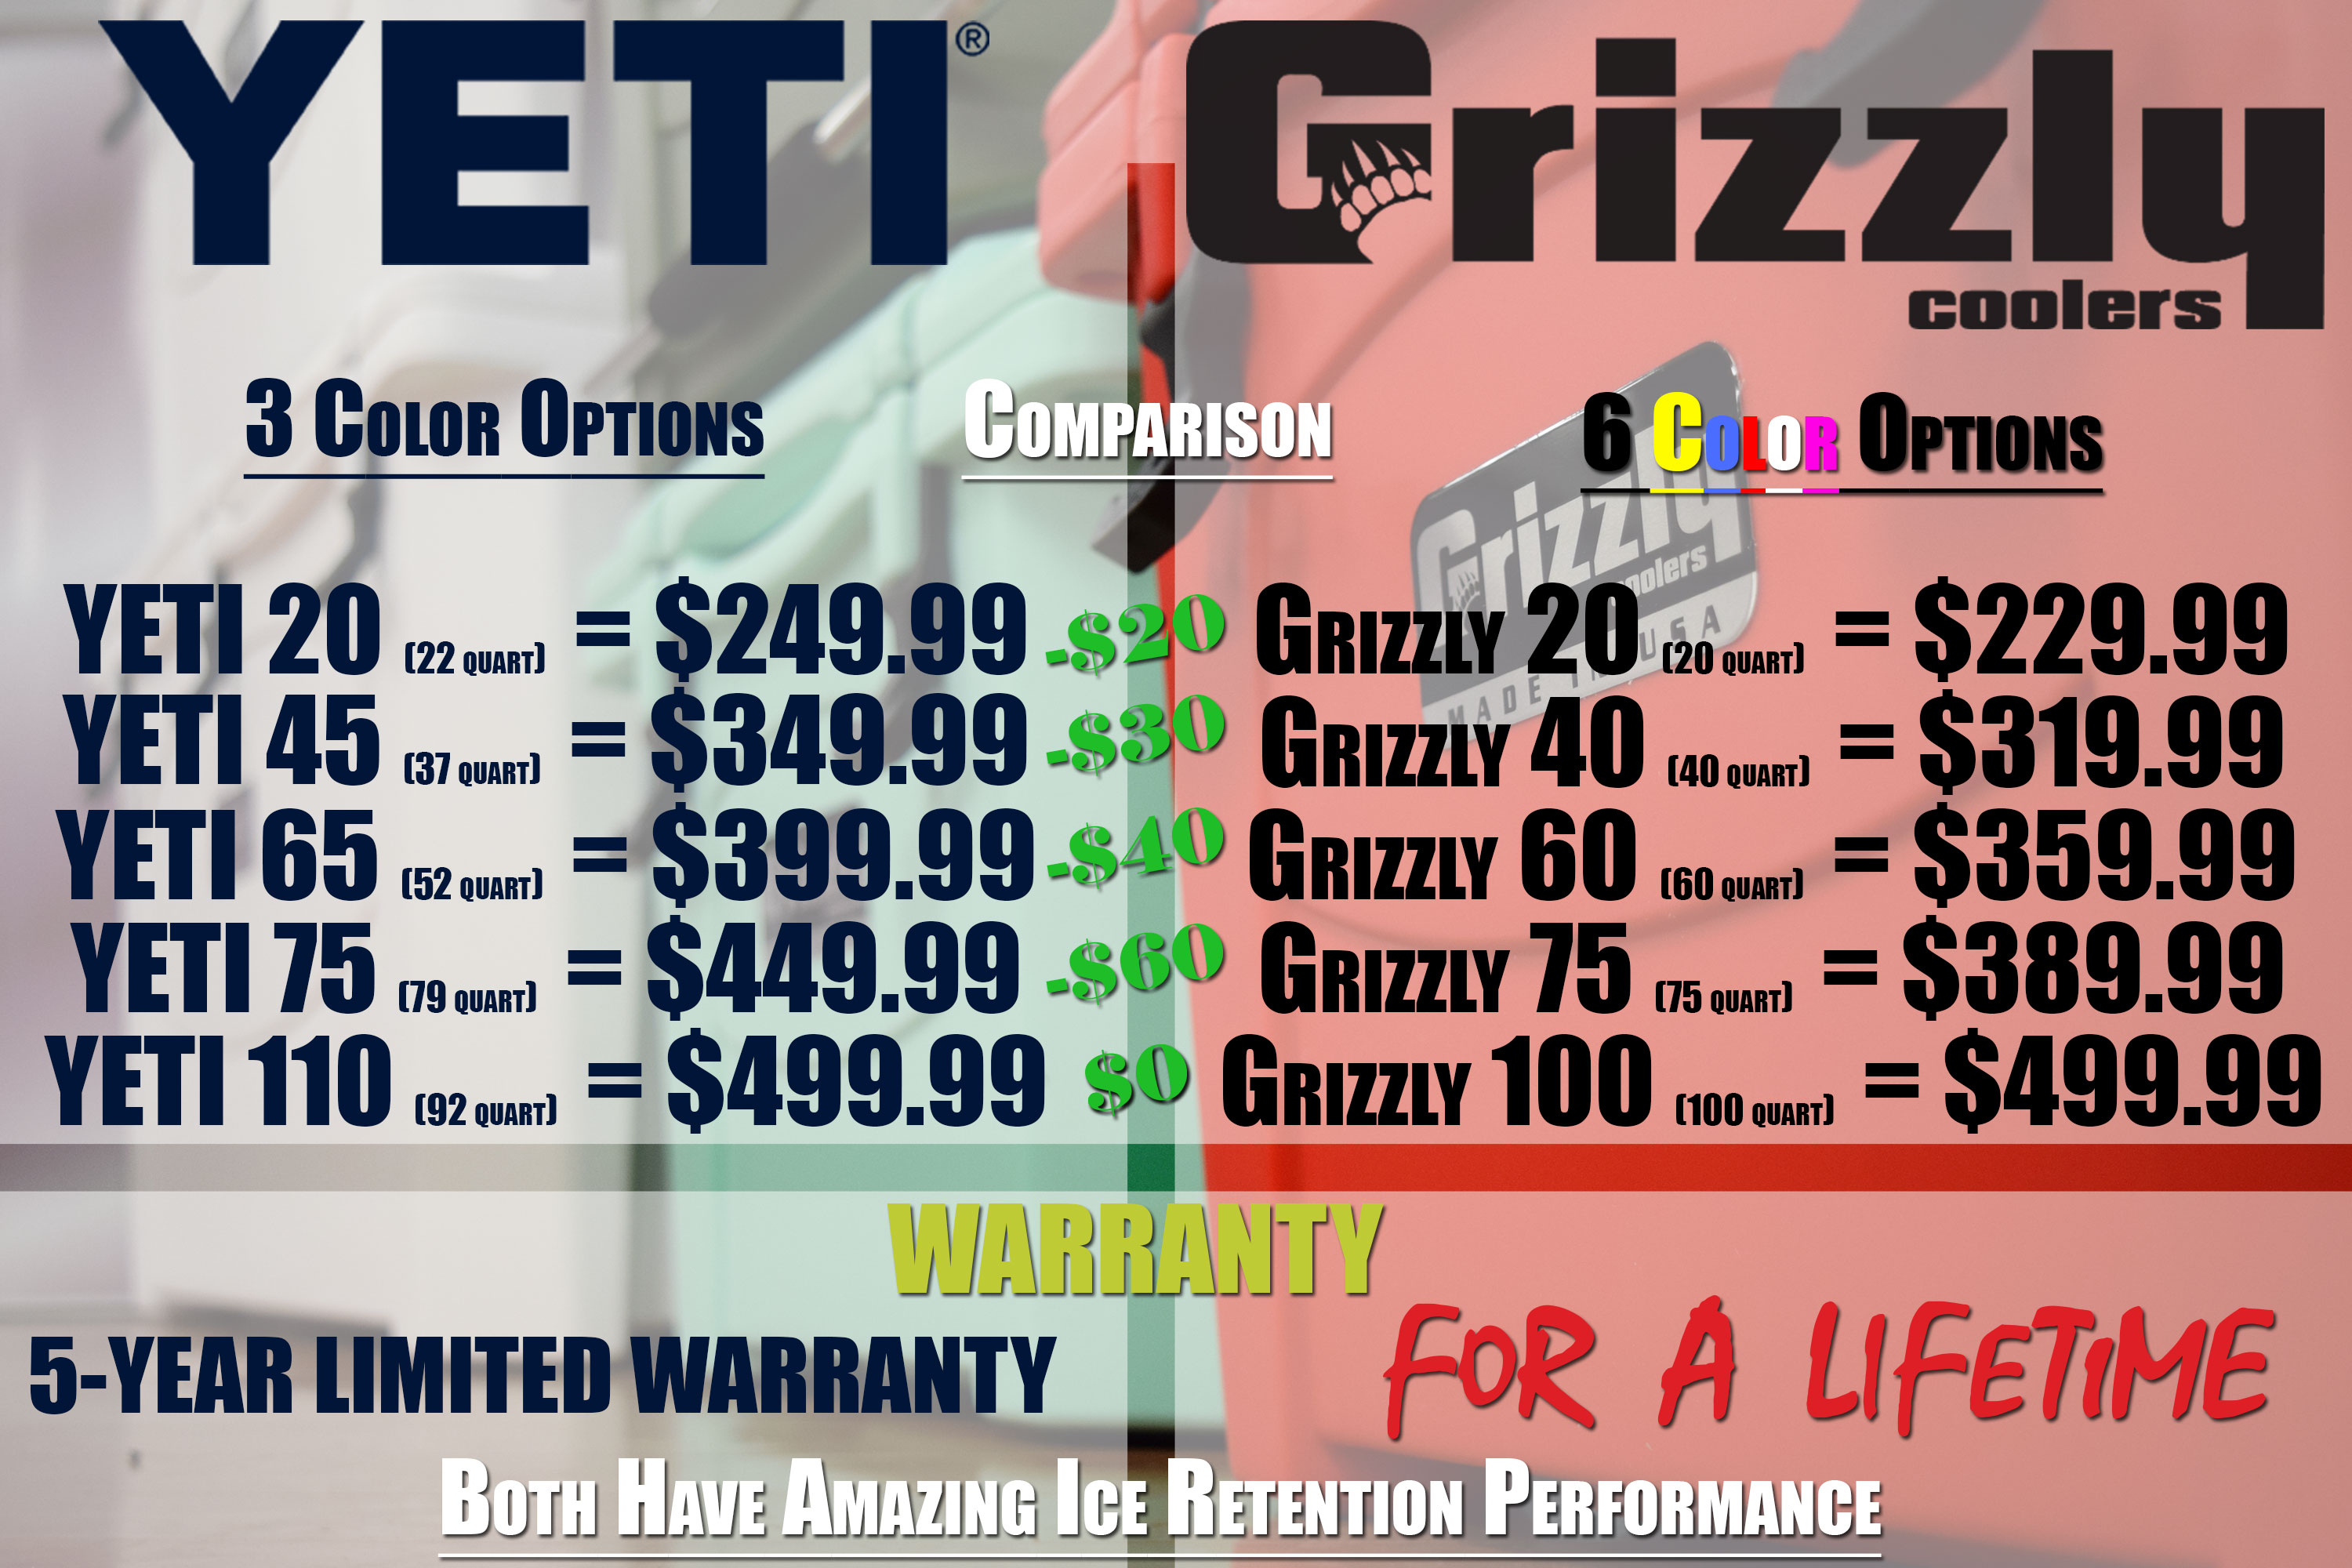 YETI vs Grizzly Coolers